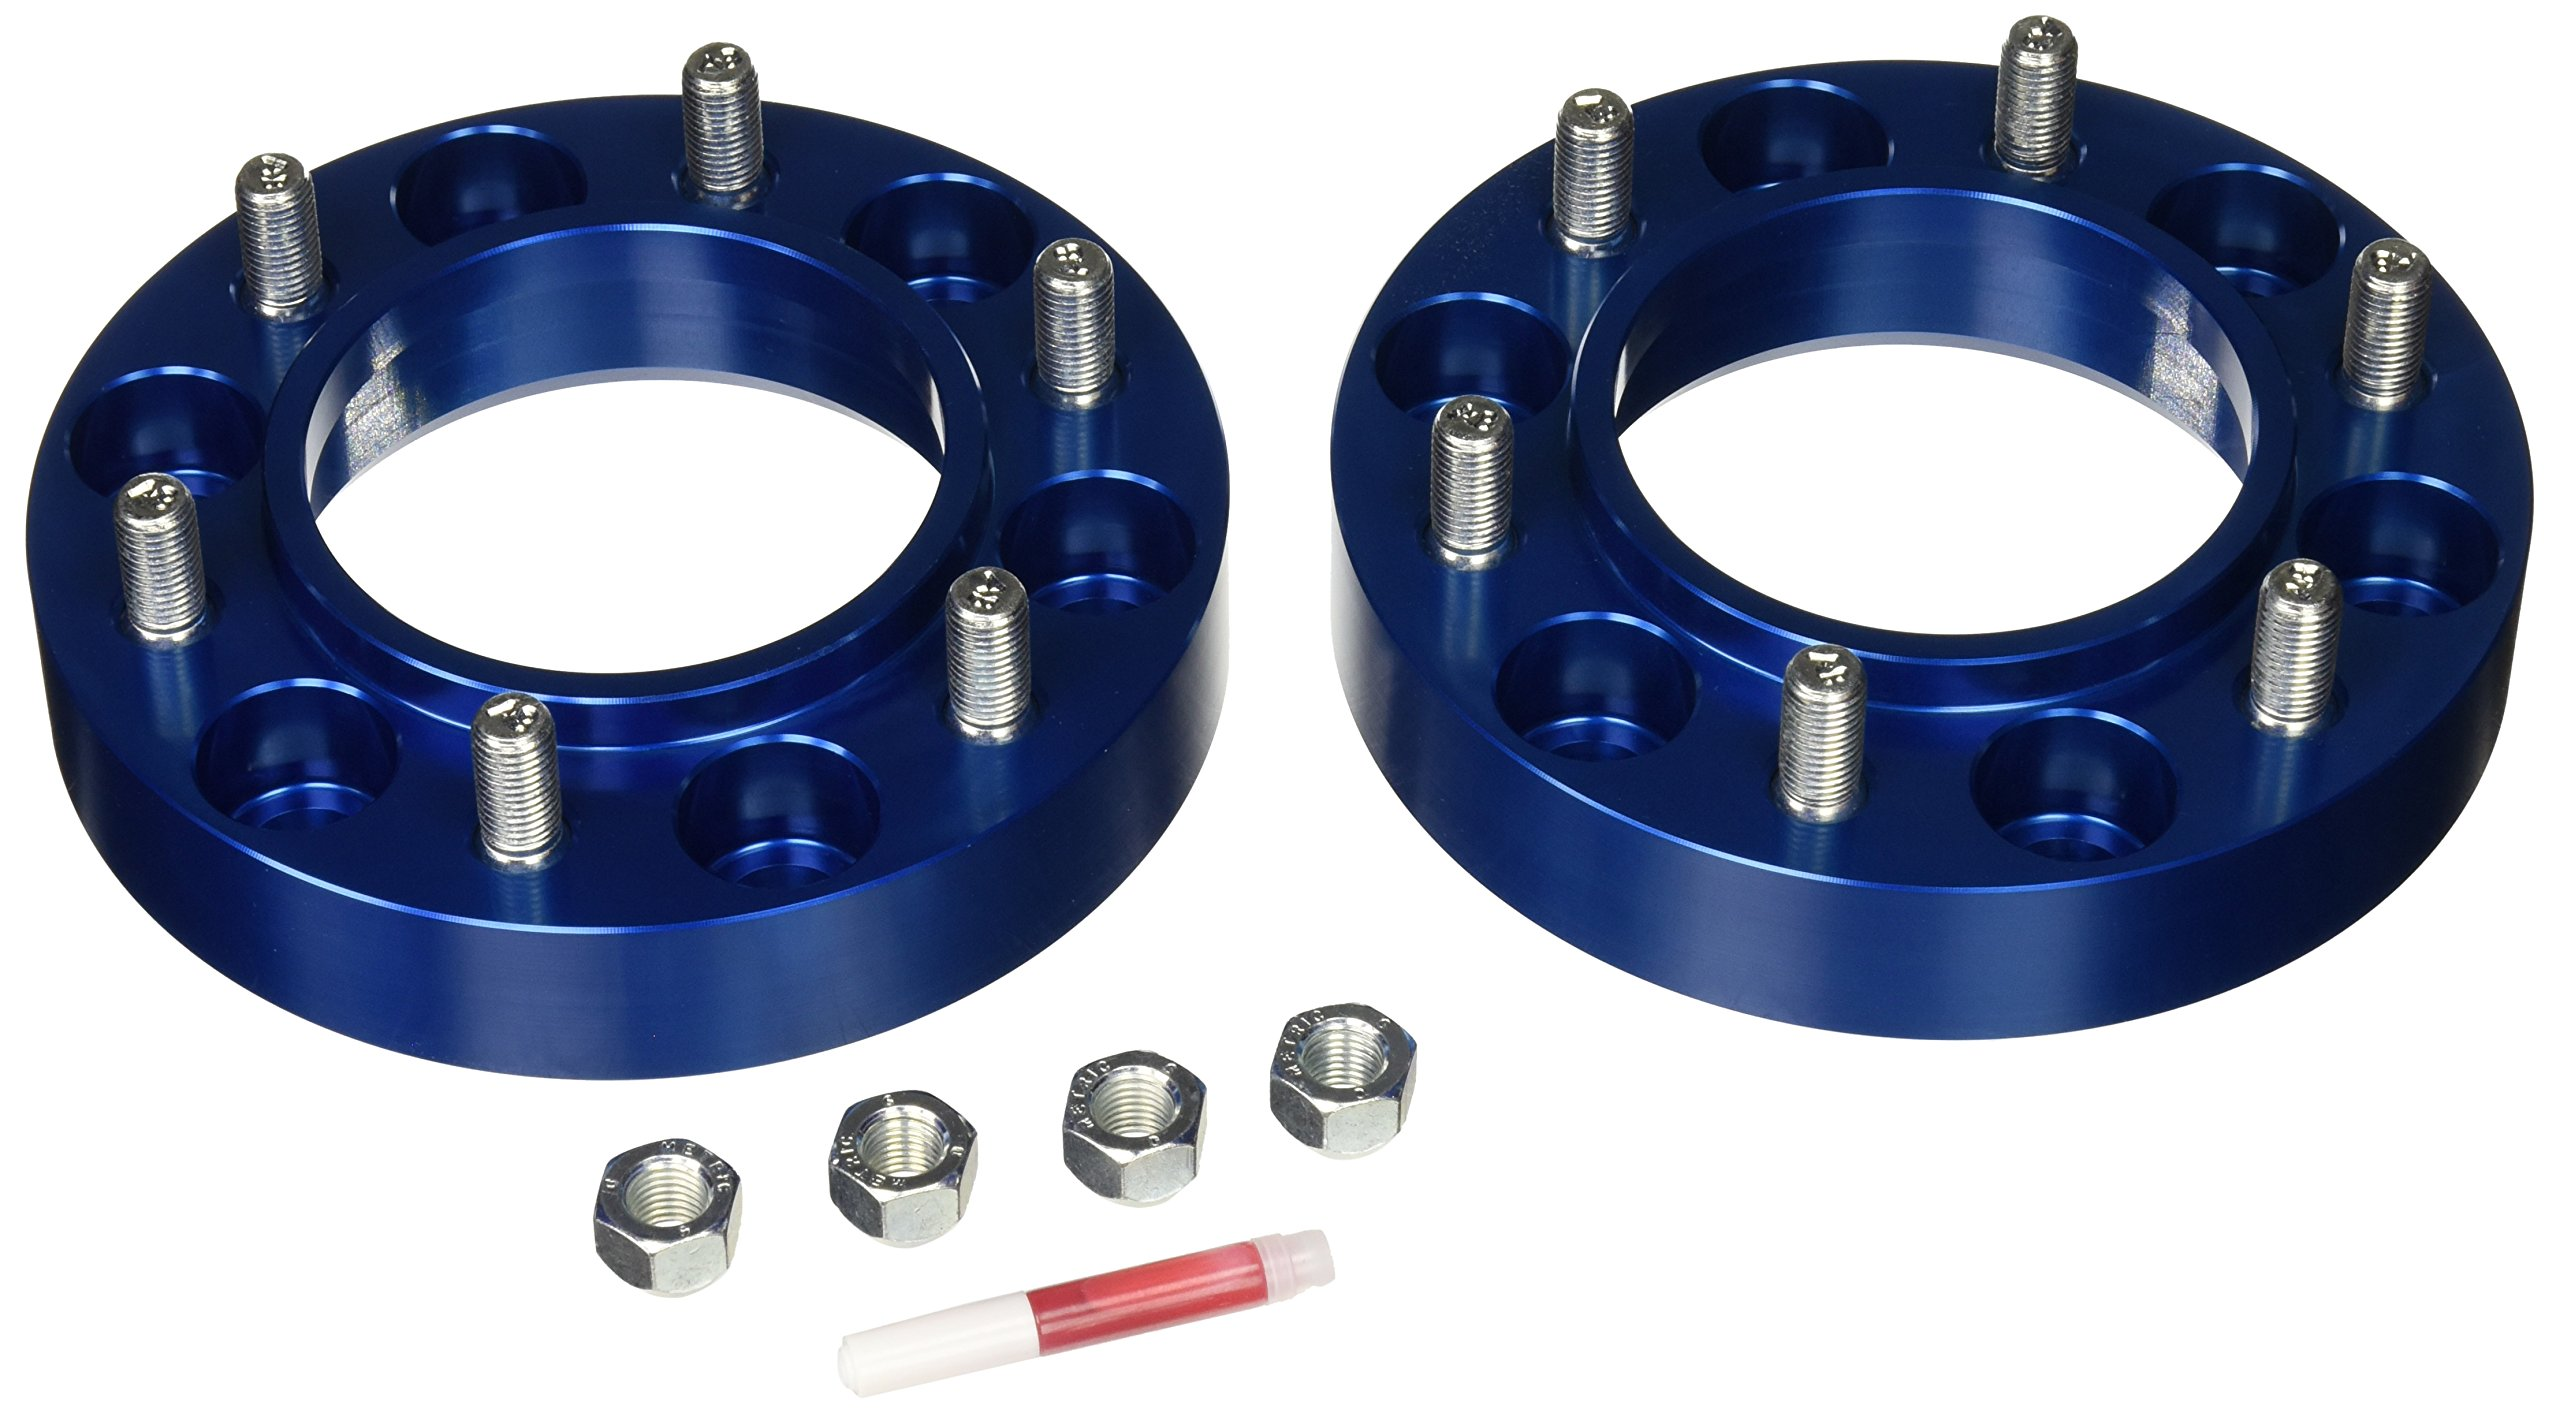 Spidertrax Offroad WHS-007 SpiderTrax Wheel Spacers Toyota Hub Centric (Late Model) by Spidertrax (Image #1)